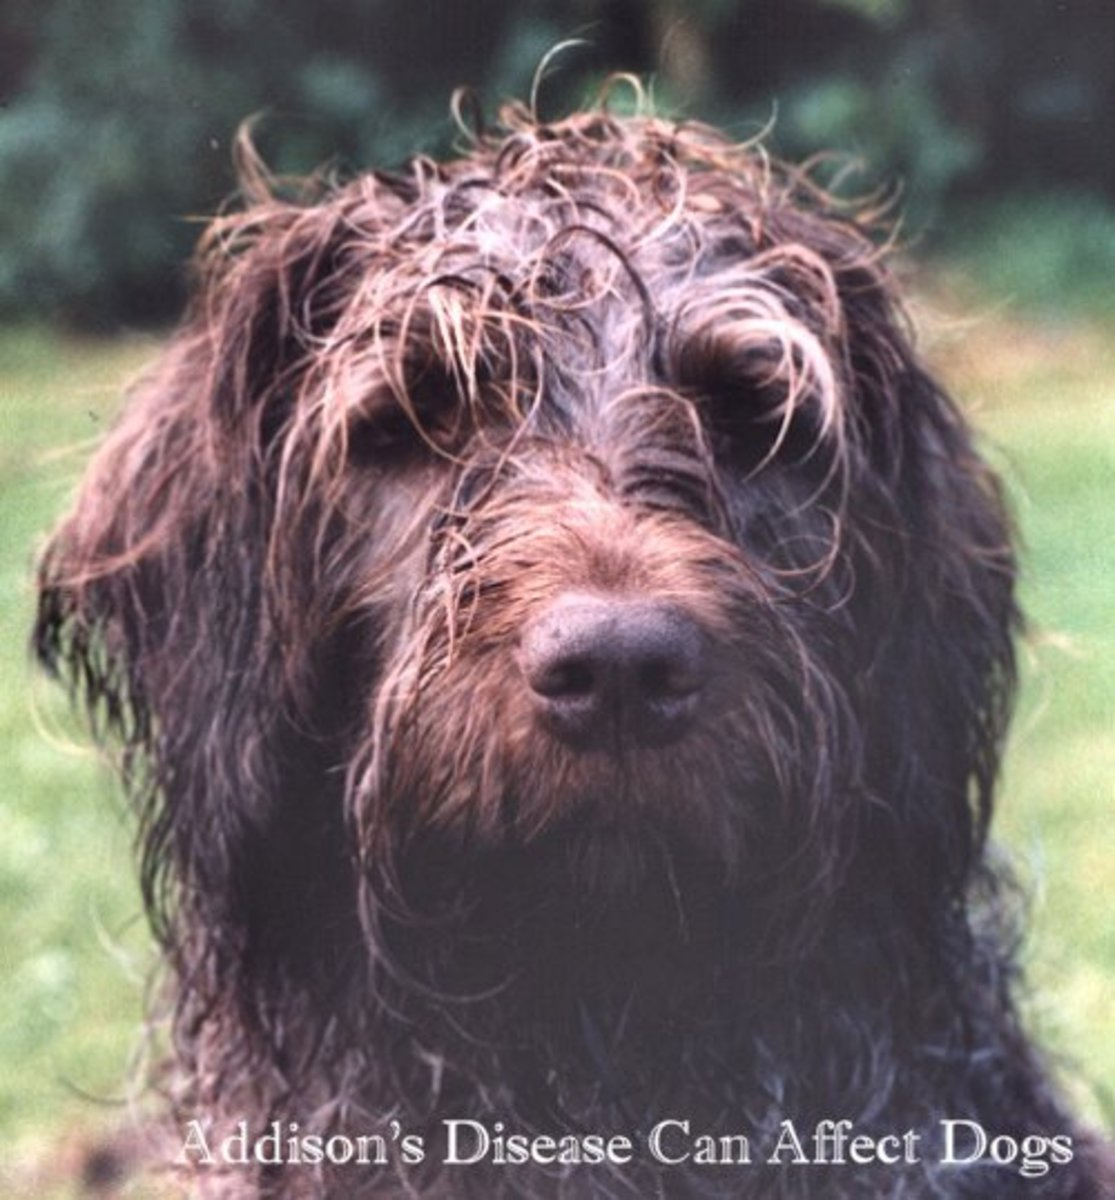 Addison's disease in Wirehaired Pointing Griffon